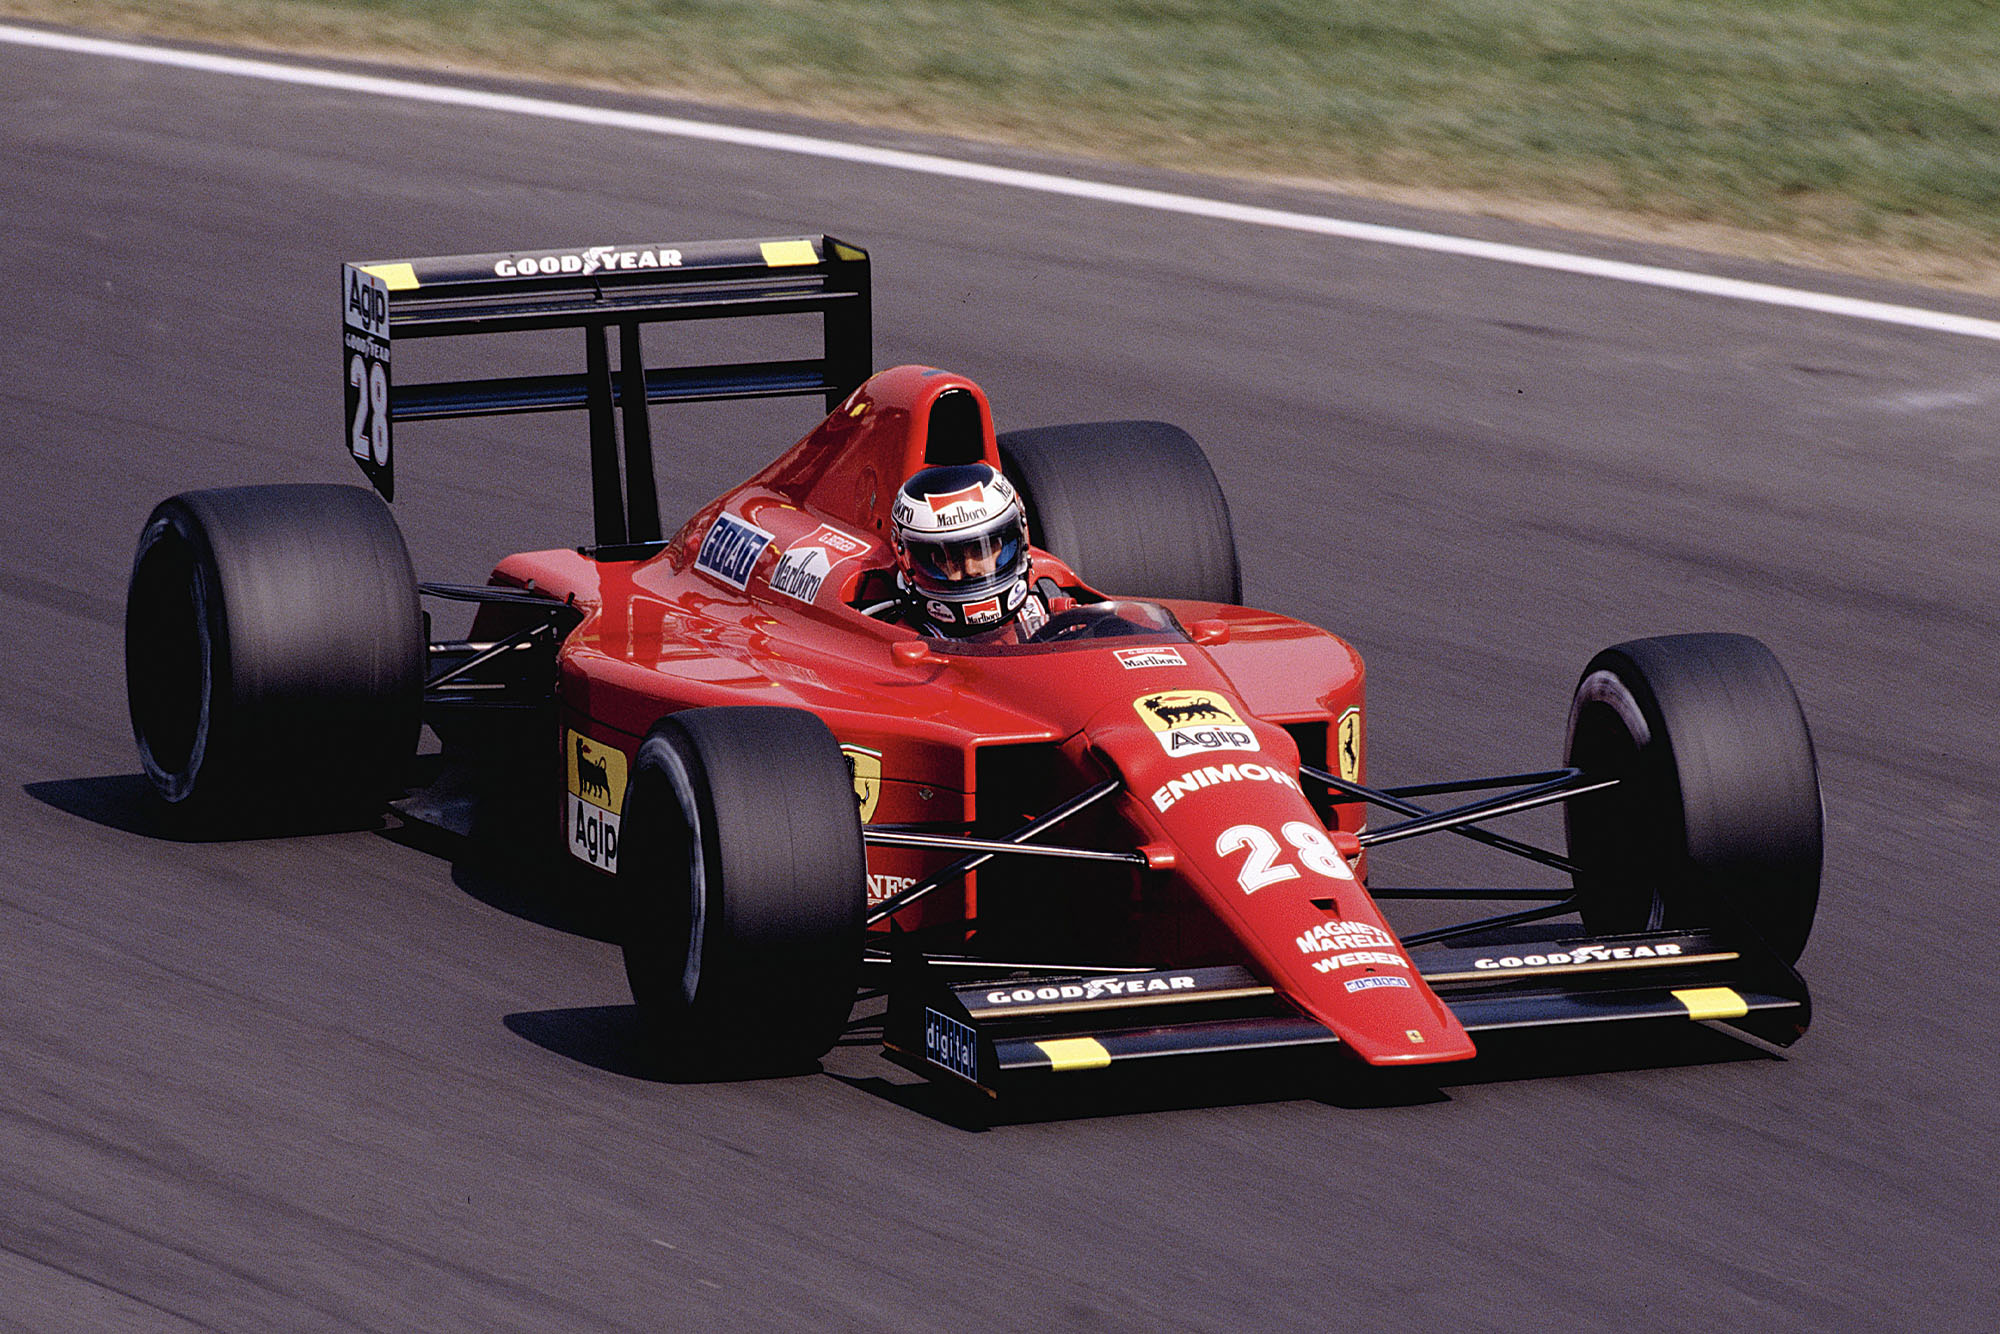 1989 ITA GP Berger Q3